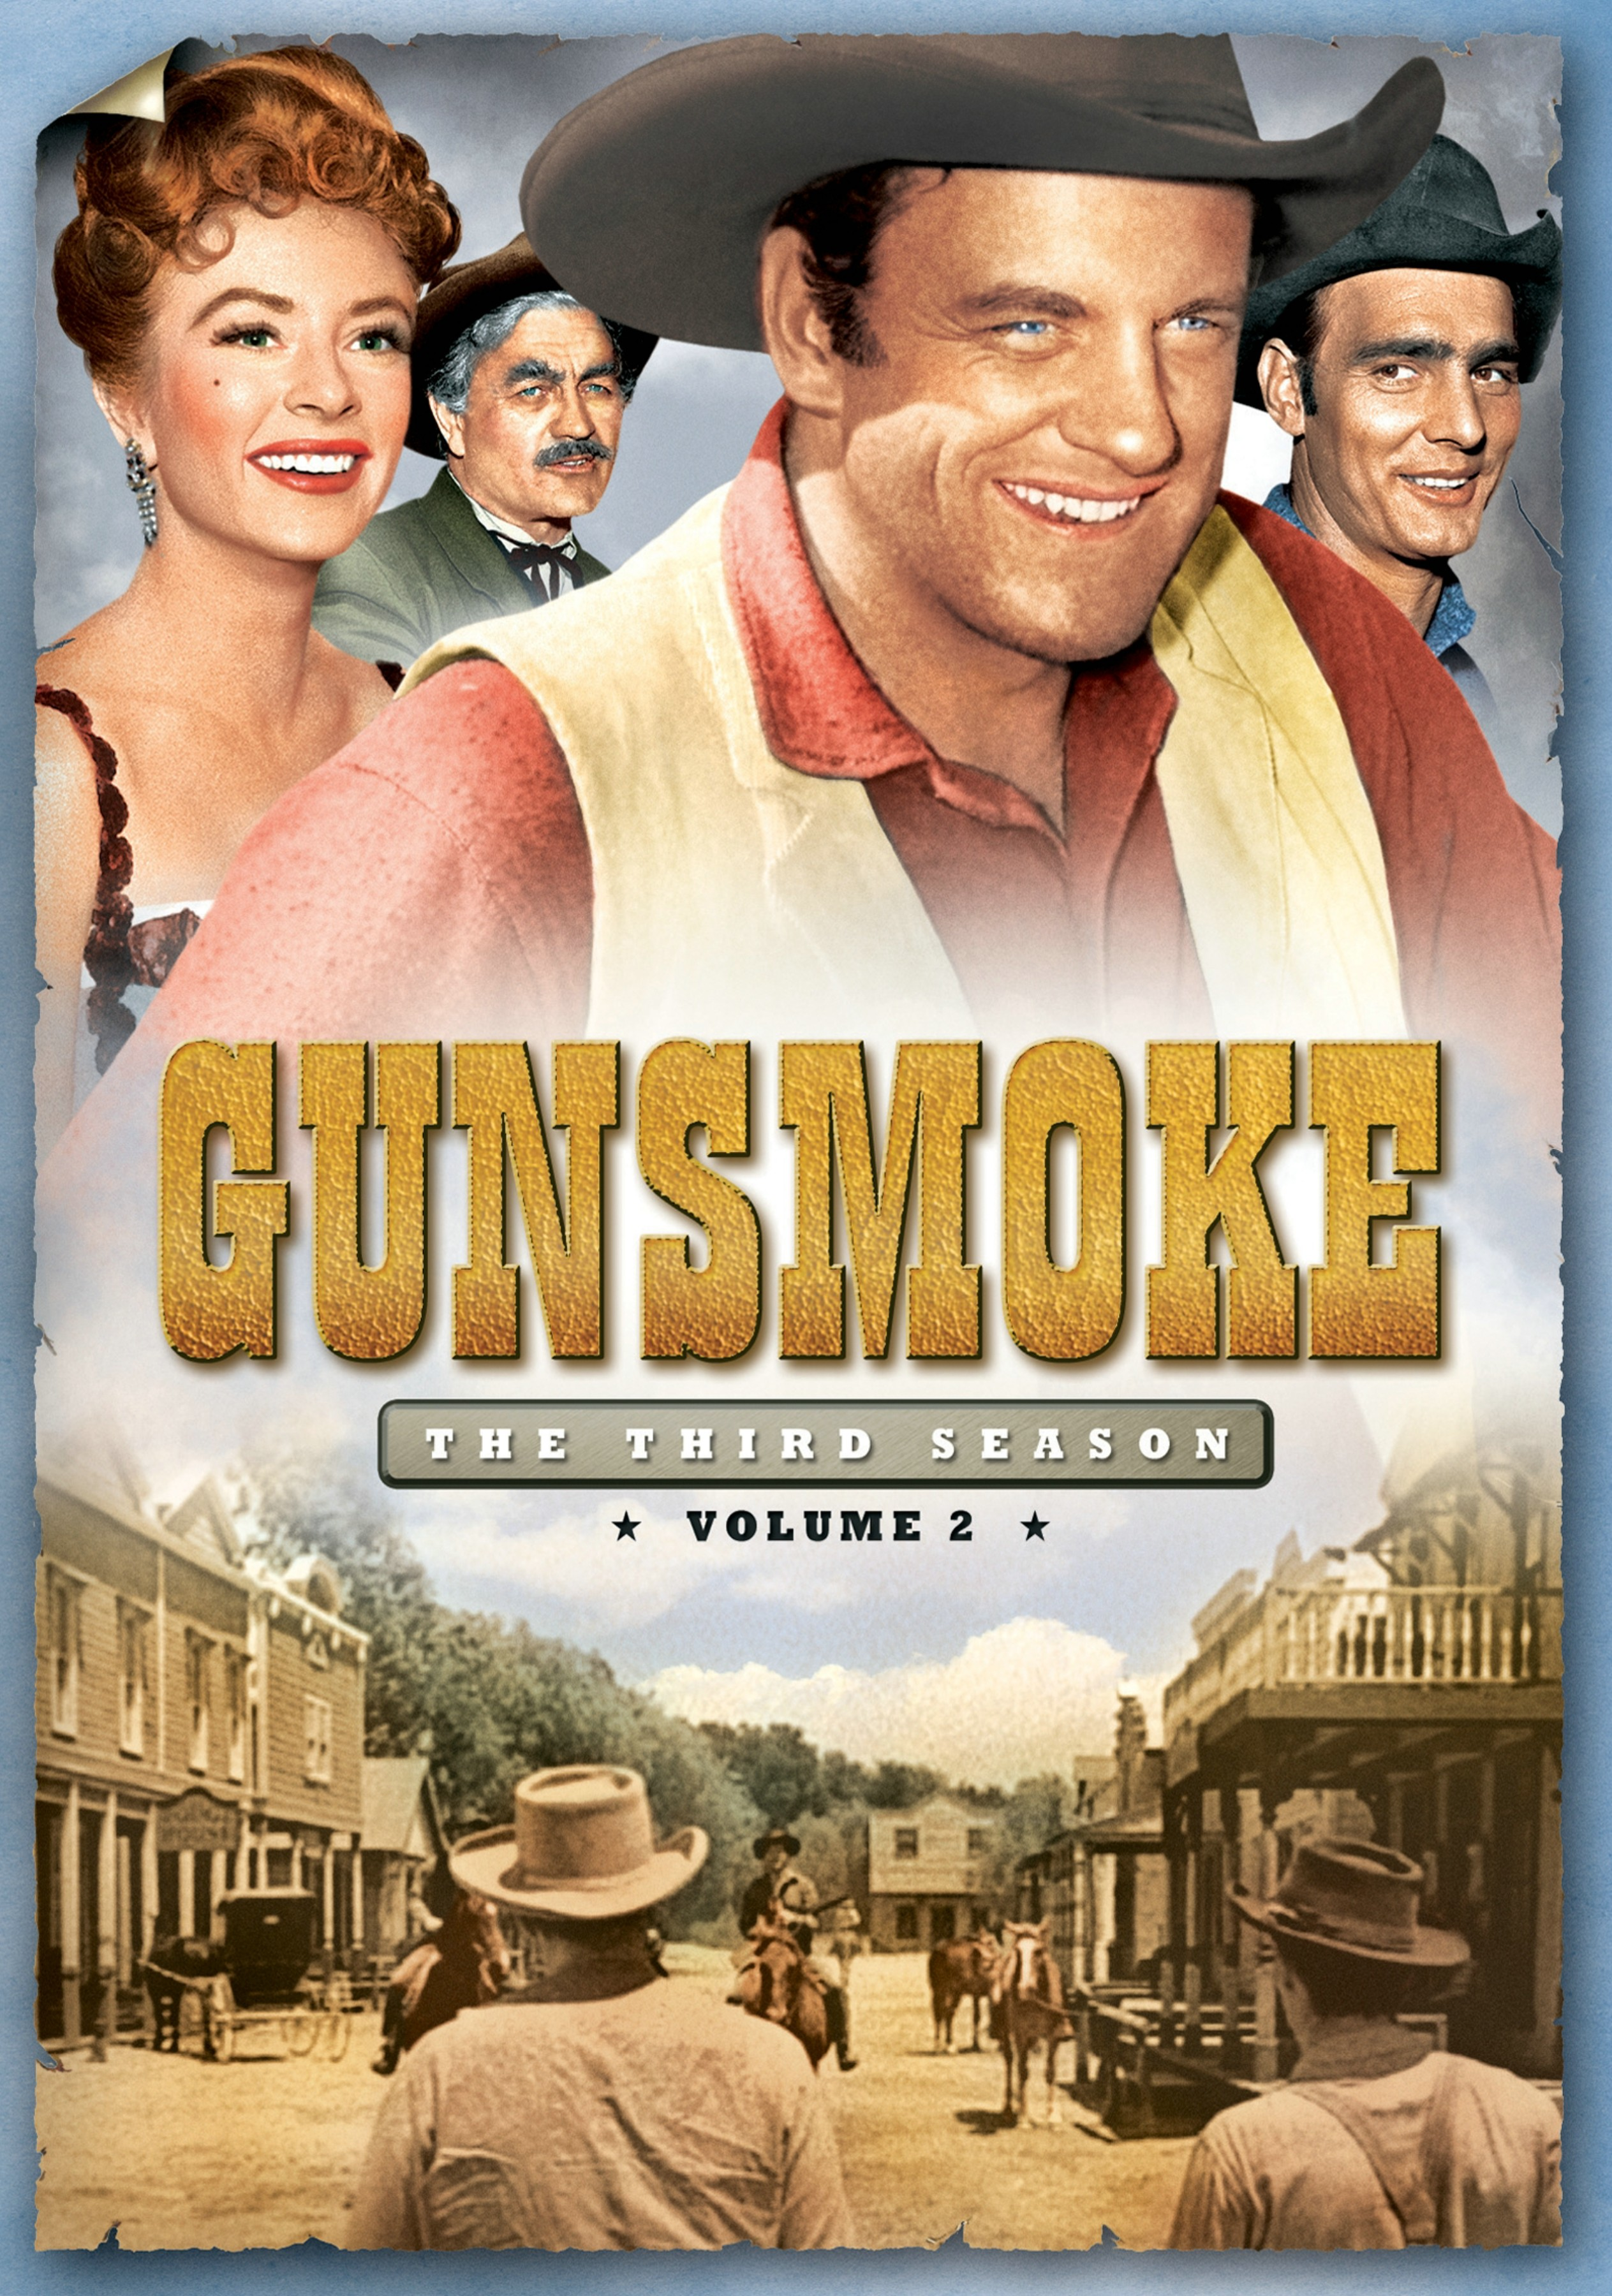 GUNSMOKE VOL 2